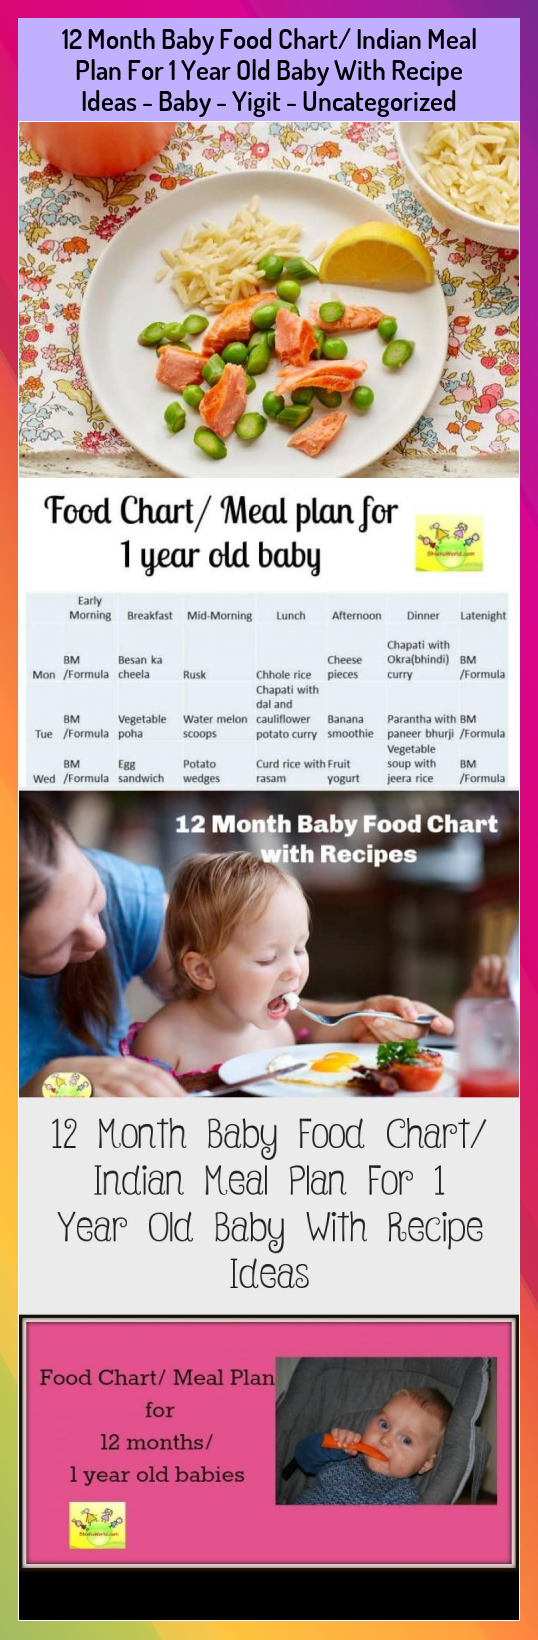 12 Month Baby Food Chart Indian Meal Plan For 1 Year Old Baby With Recipe Ideas  Baby  Yigit  Uncategorized